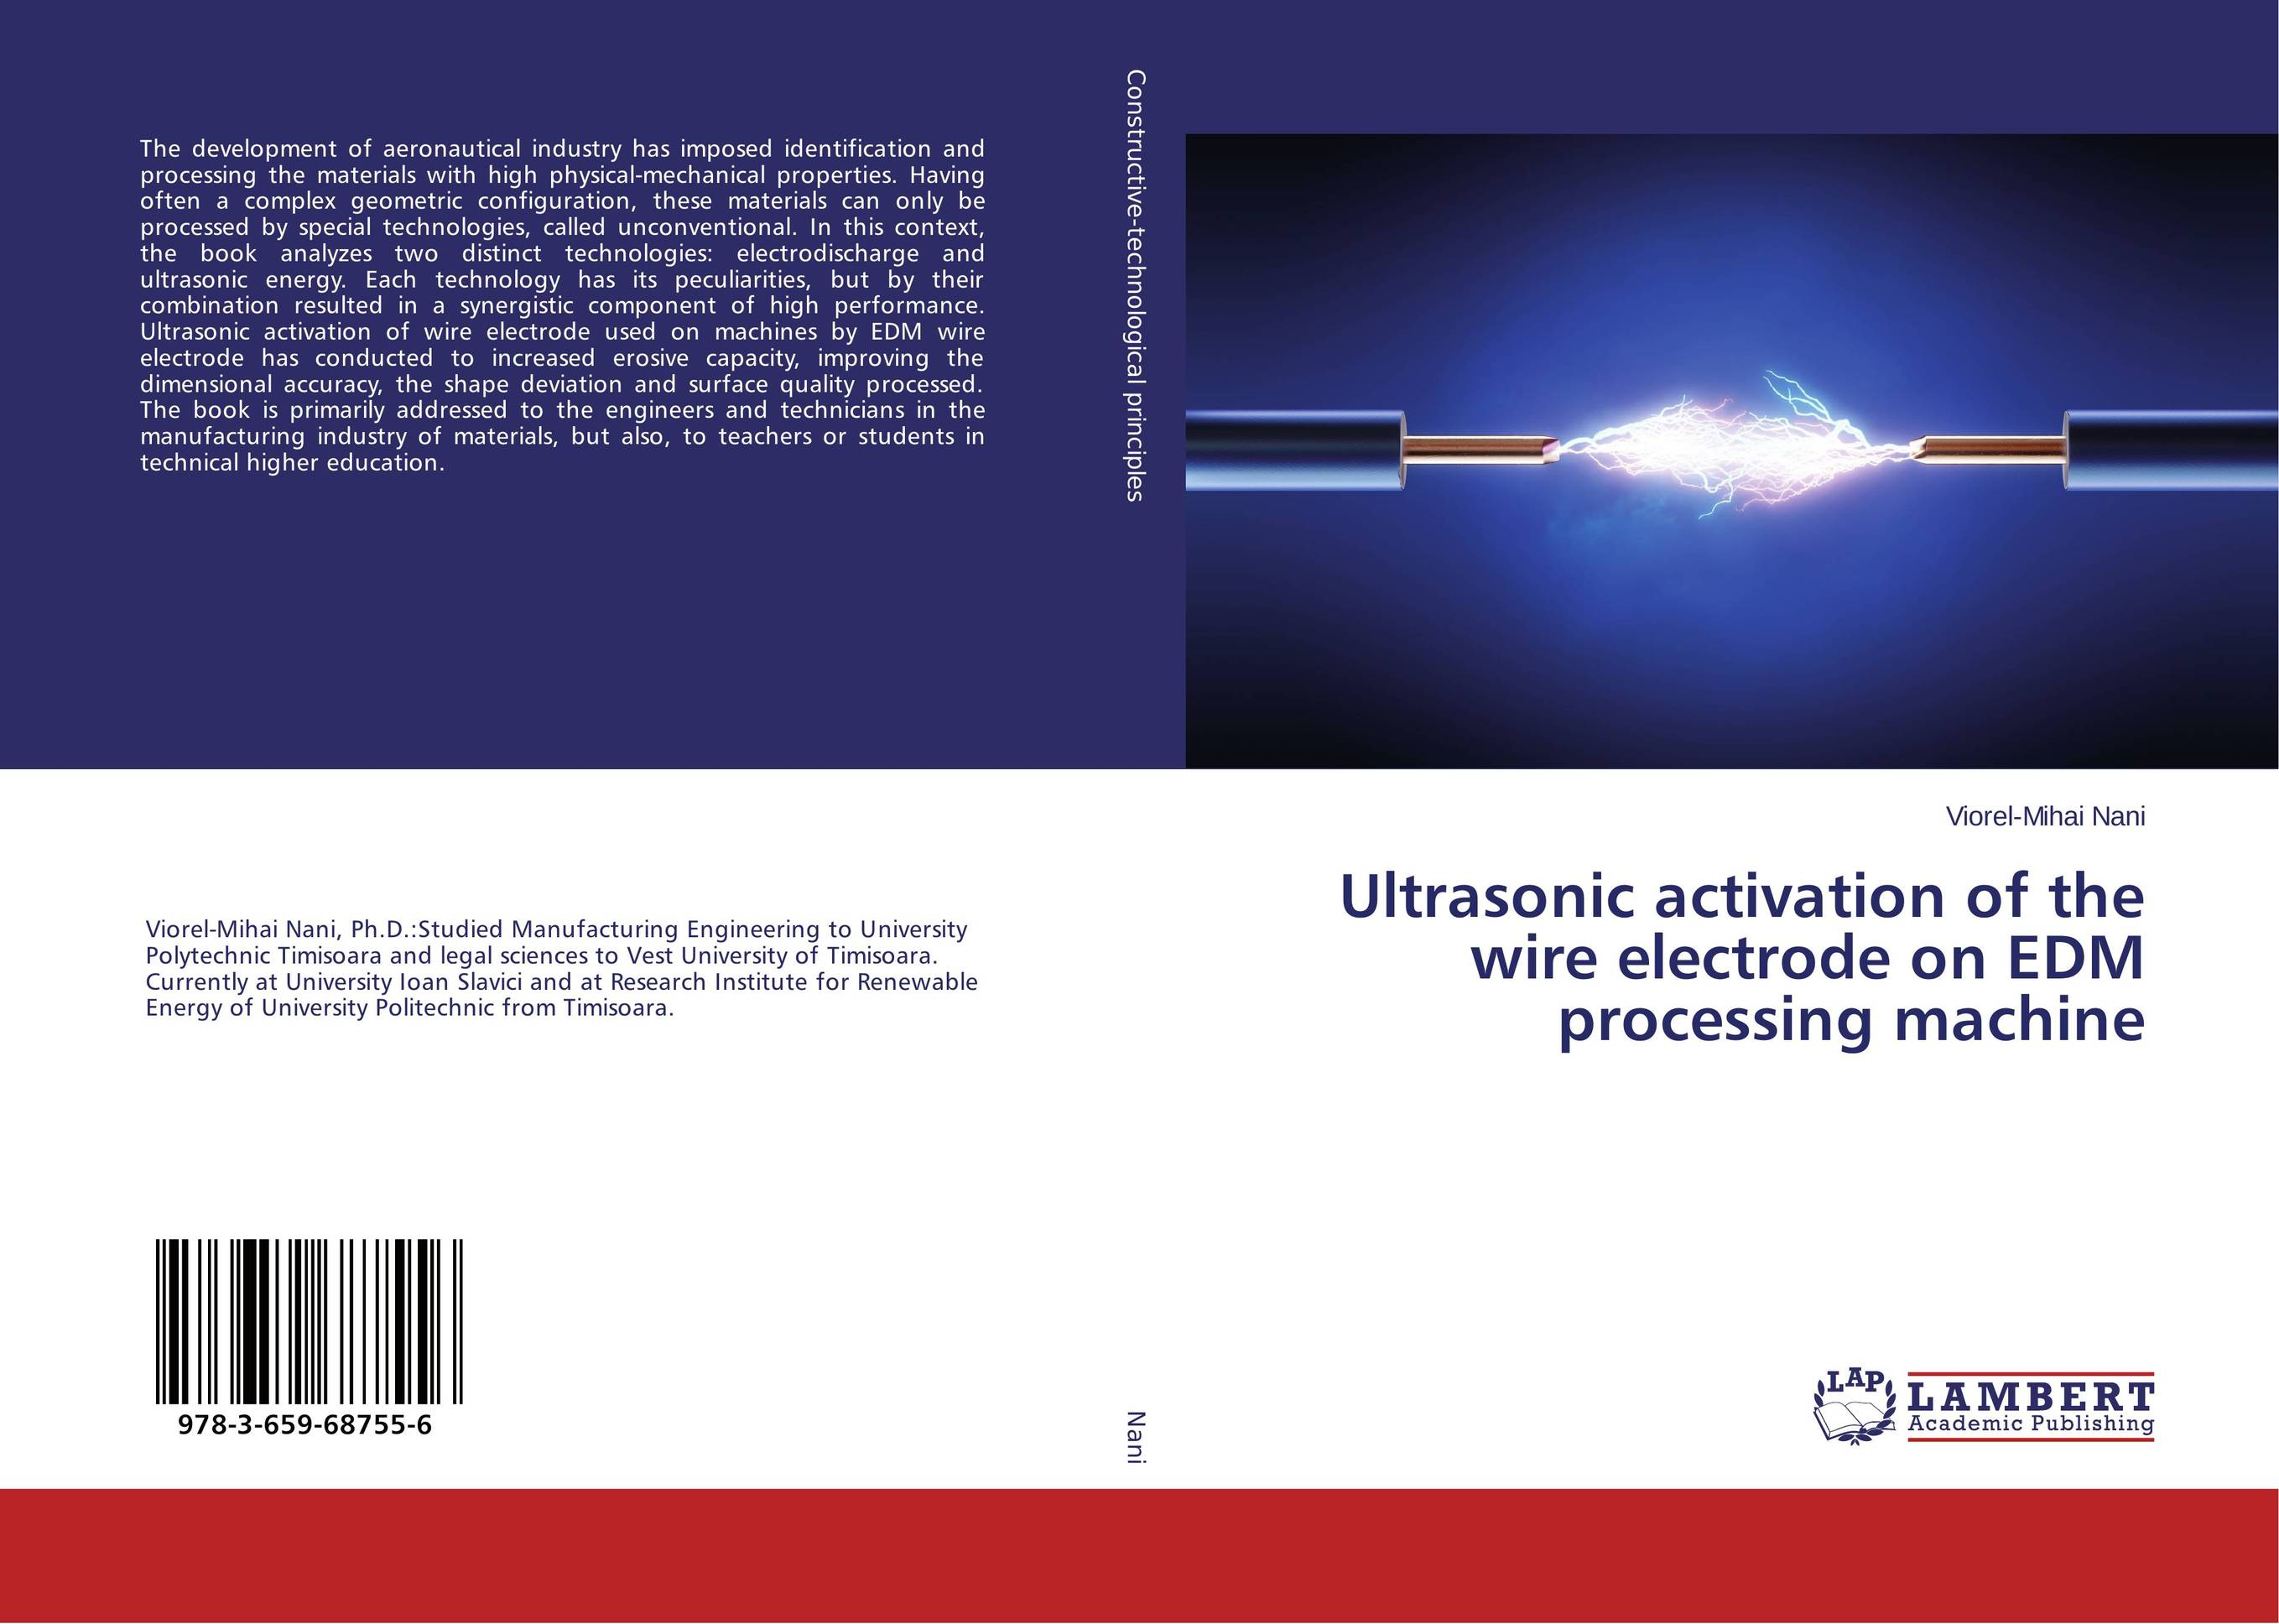 Ultrasonic activation of the wire electrode on EDM processing machine materials surface processing by directed energy techniques